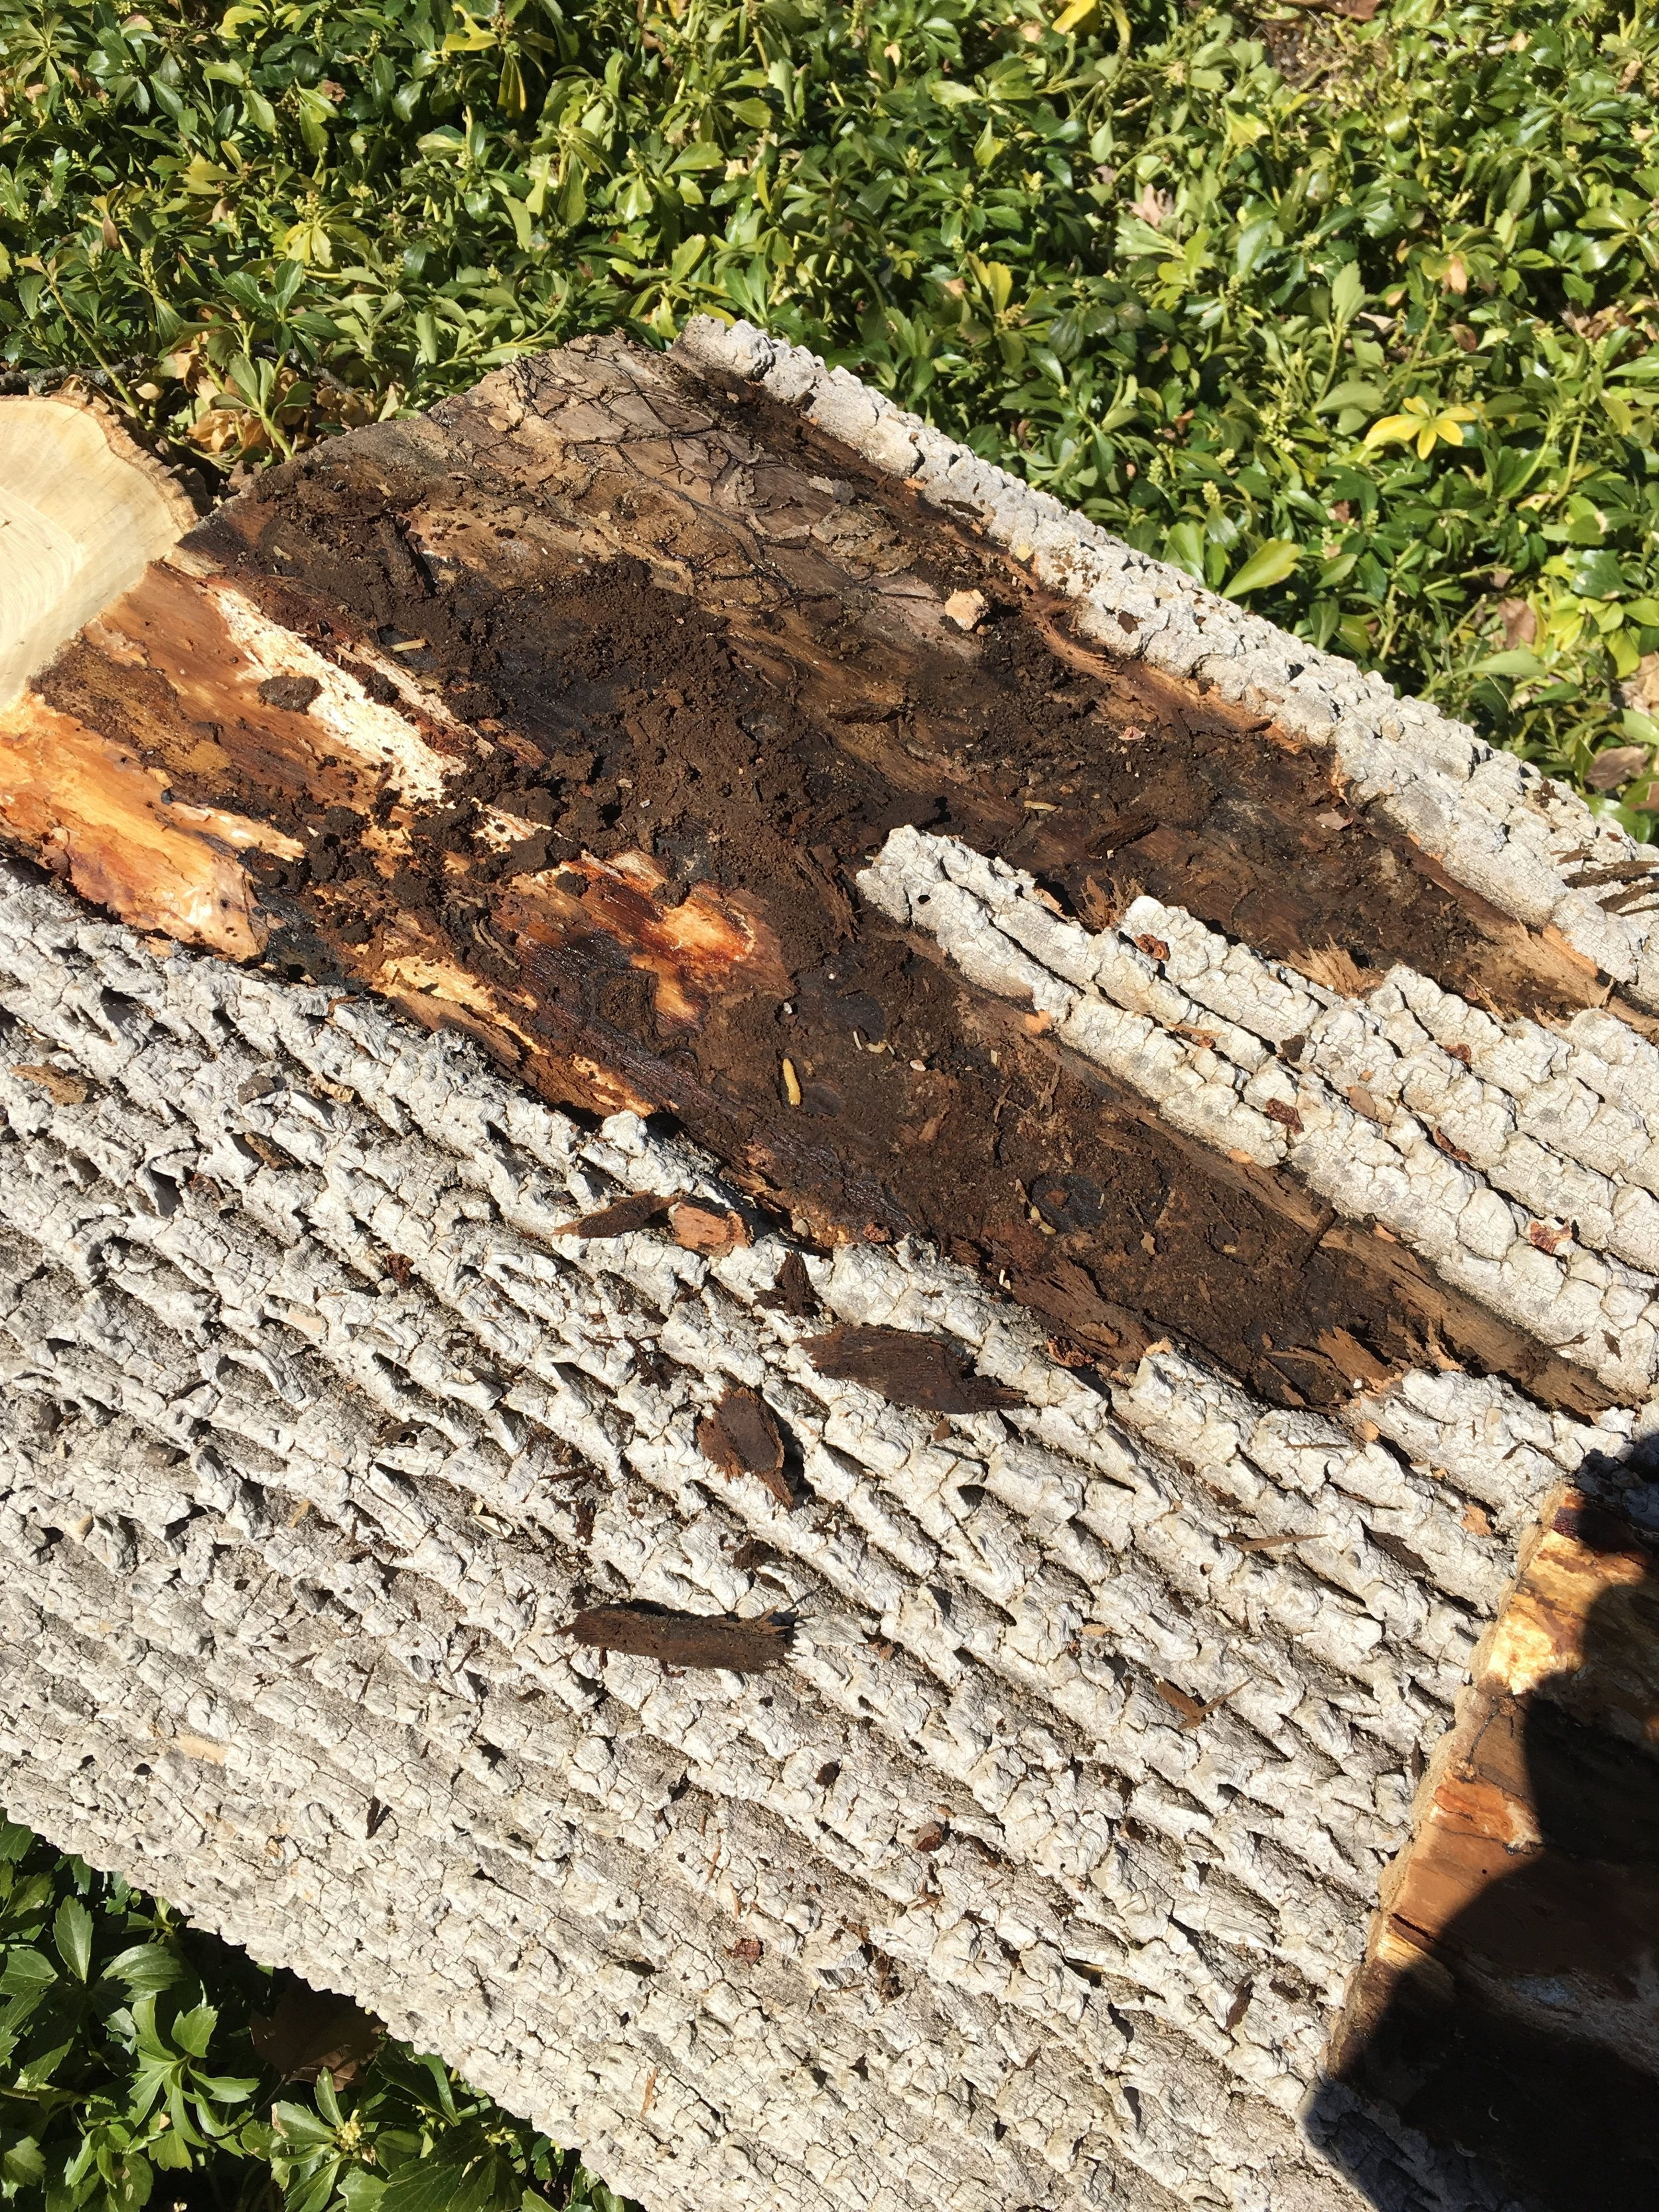 indianapolis woodworking-woodworker-live edge.jpg